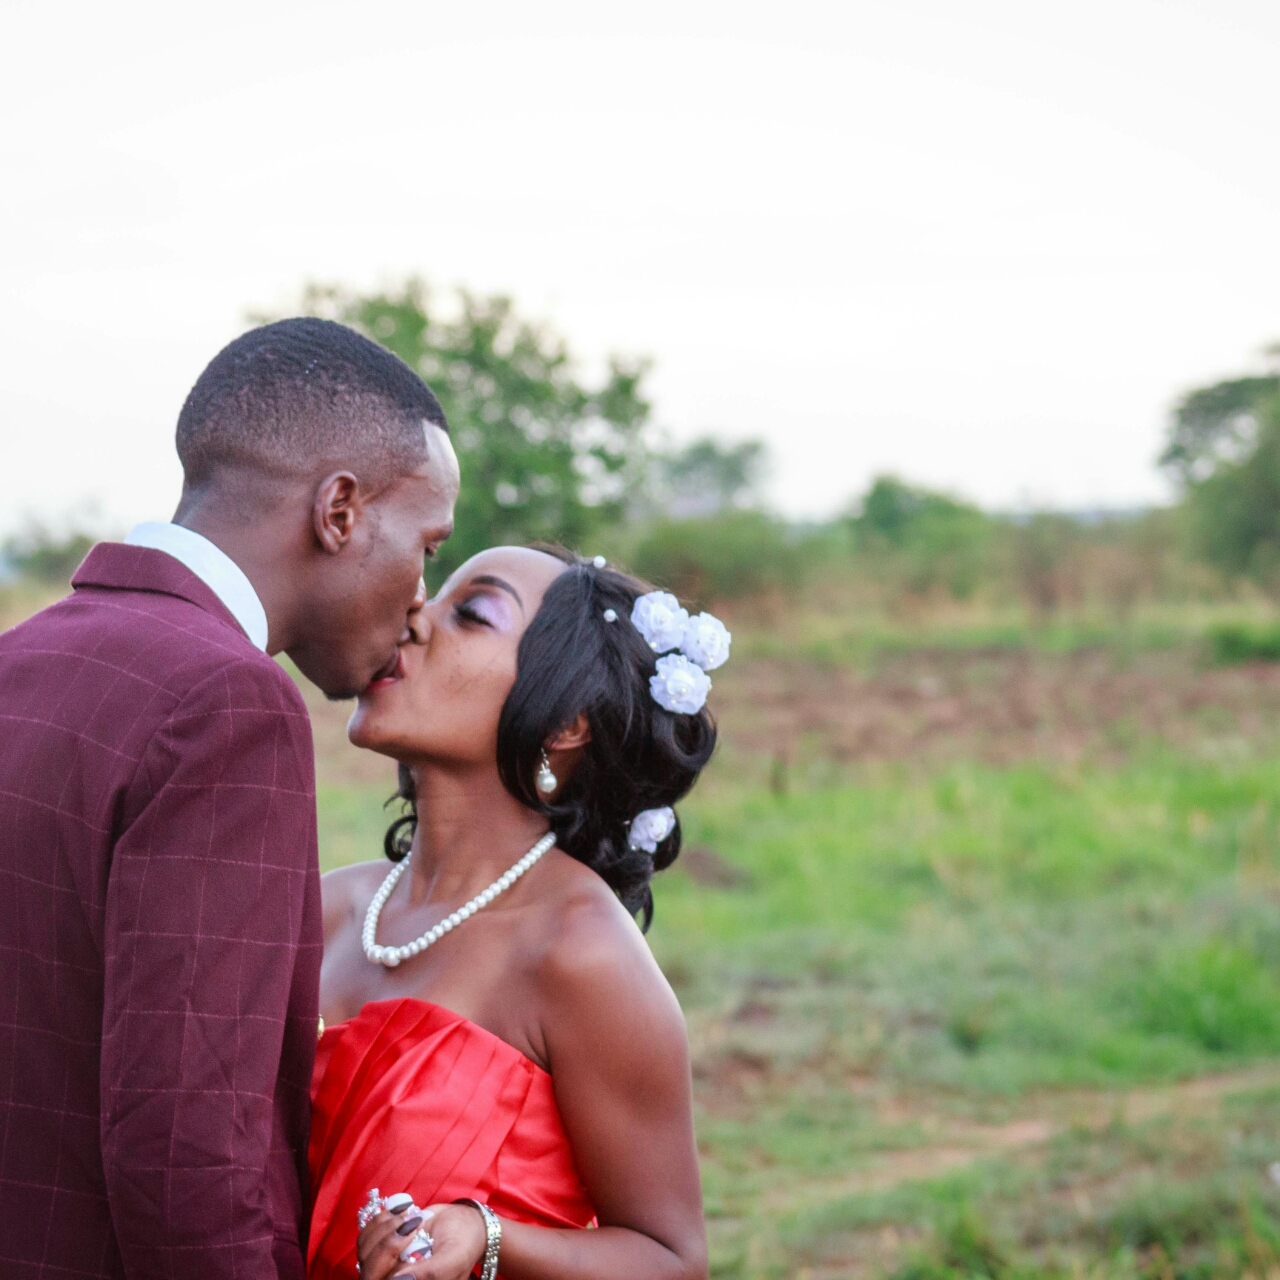 Wedding Expos Africa - Rudo Wuragu and Gamaliel Madindi share a romantic moment during the photoshoot